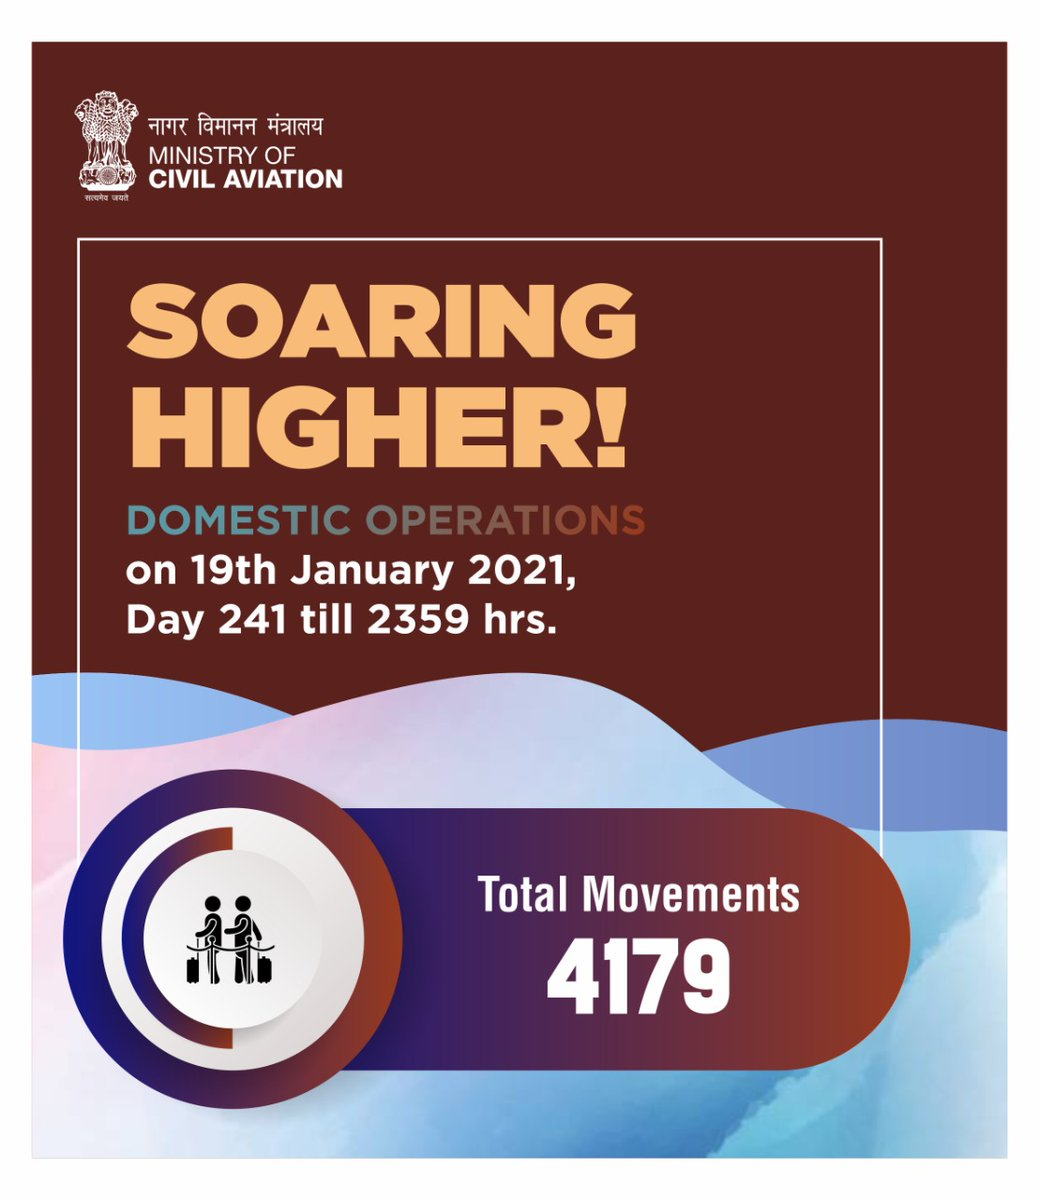 India soaring higher!  A total of 4179 flight movements took place across the country on 19th January. Aviation operations continue to soar! #SabUdenSabJuden #IndiaFliesHigh